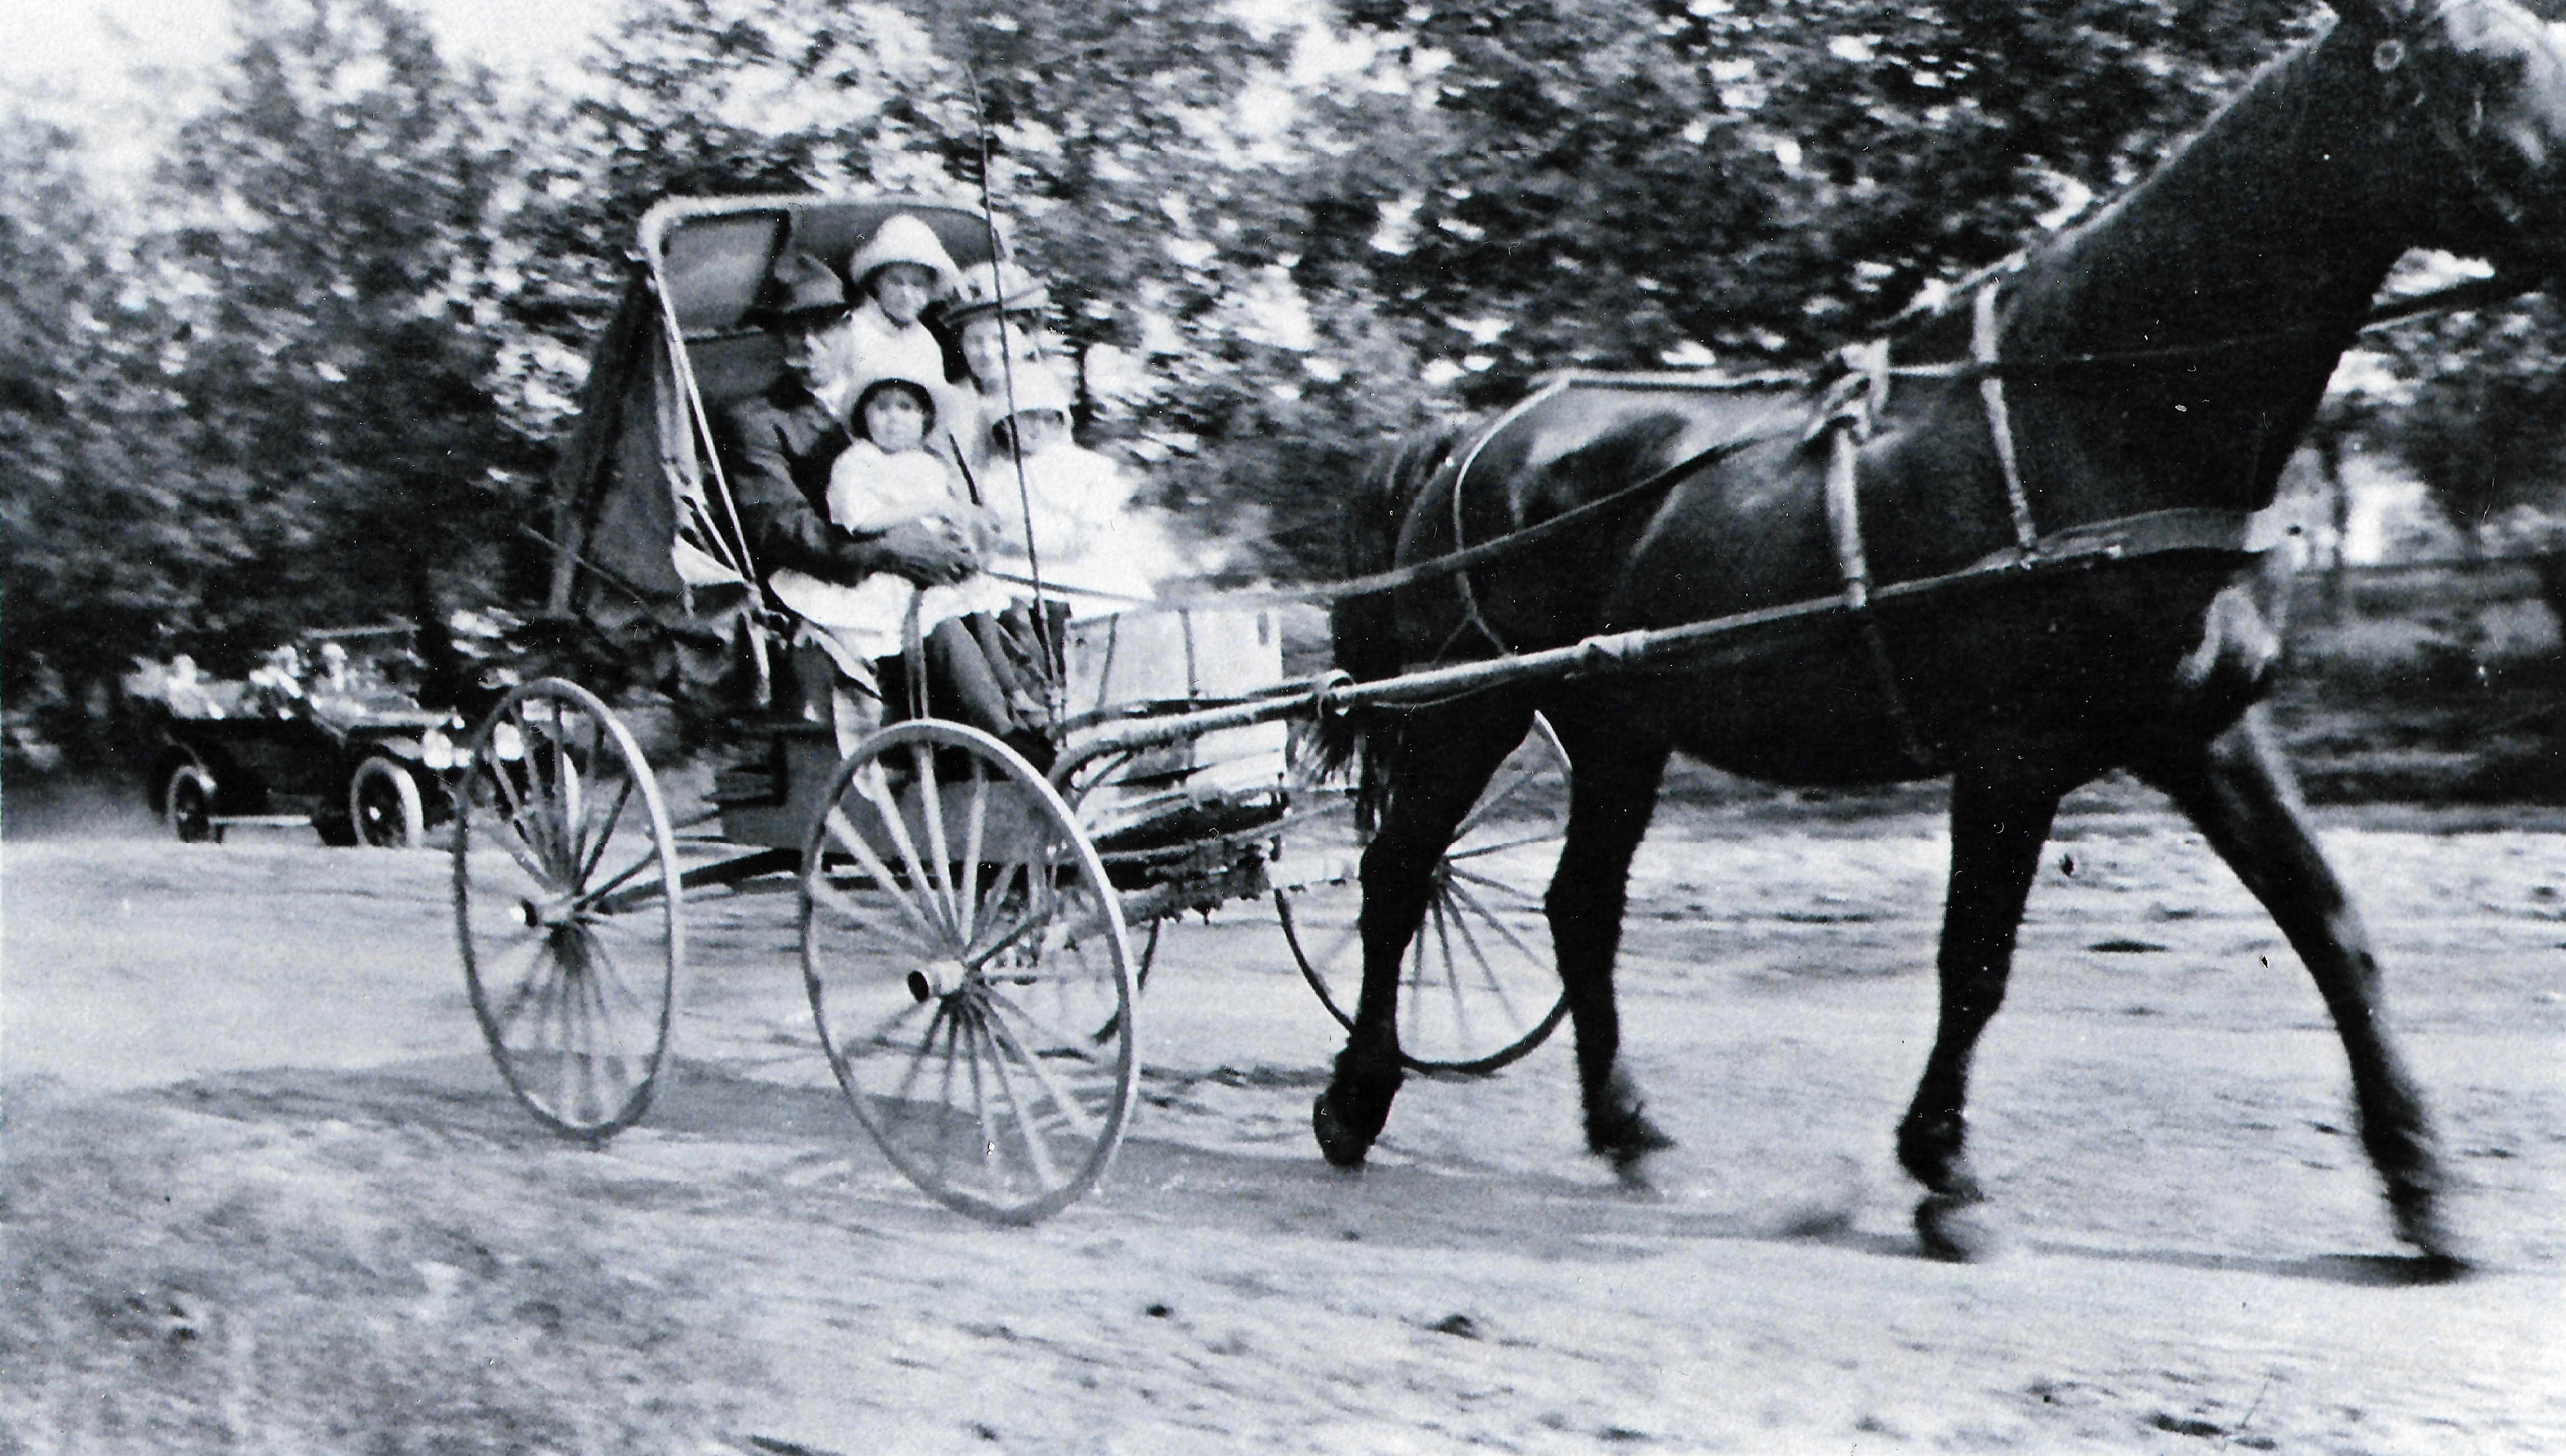 Erna Zahn as a child in 1915, riding in a horse and buggy near Pickett, Wisconsin with her siblings and parents. They were traveling to a family member's house on a Sunday afternoon.